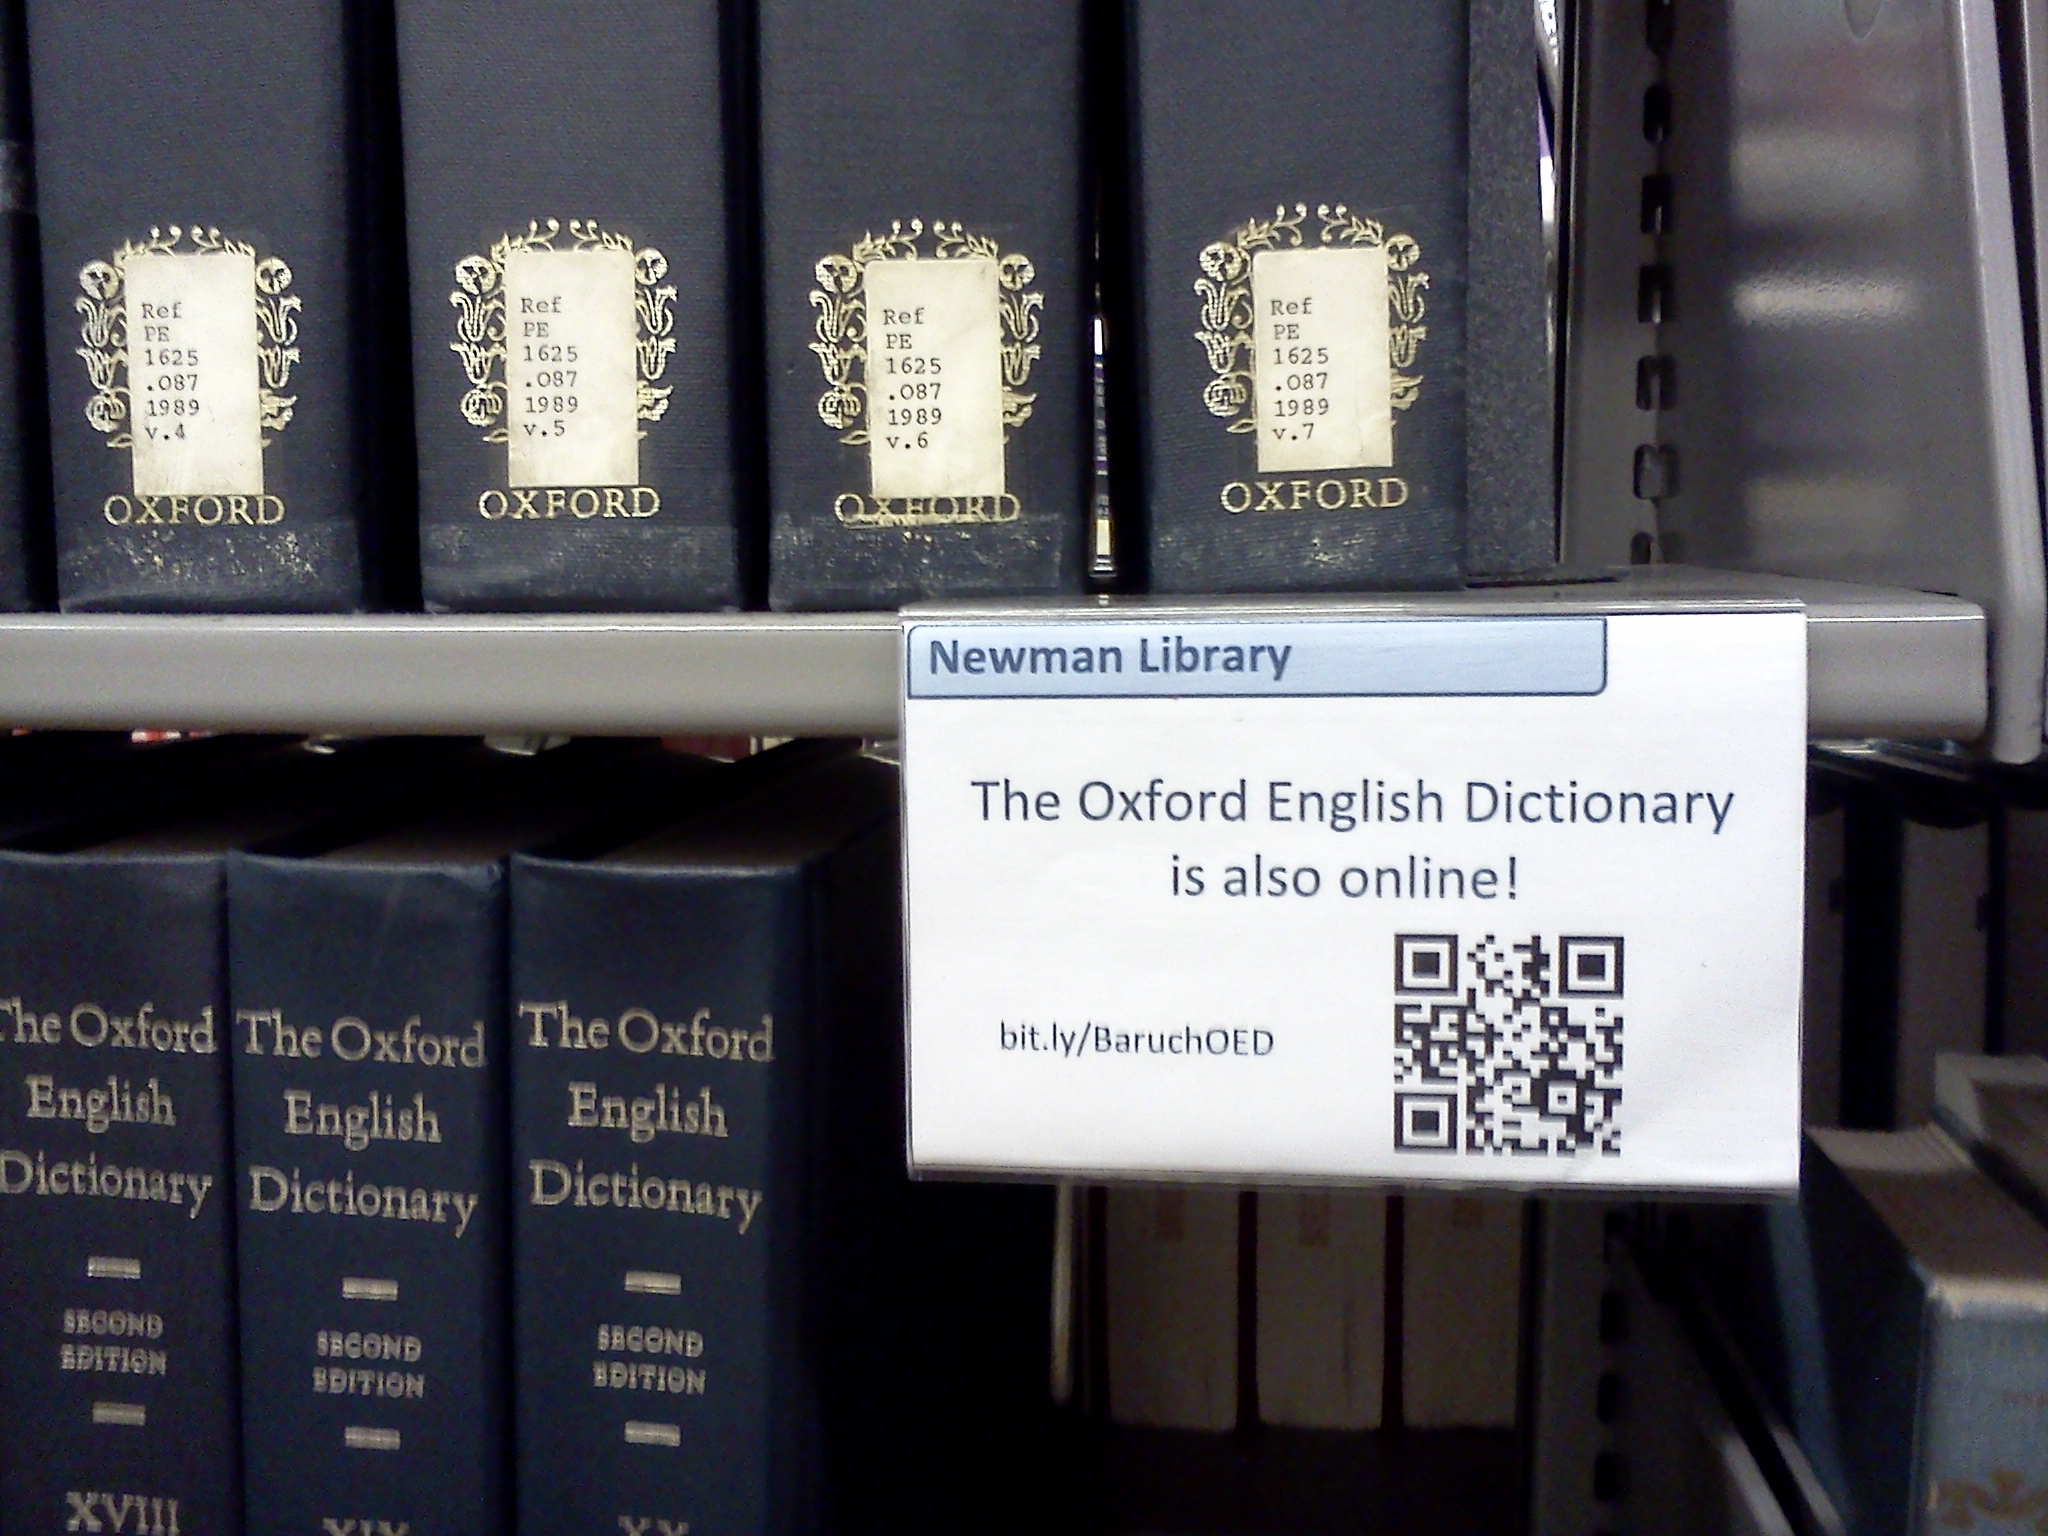 Oxford English Dictionary – Reference at Newman Library